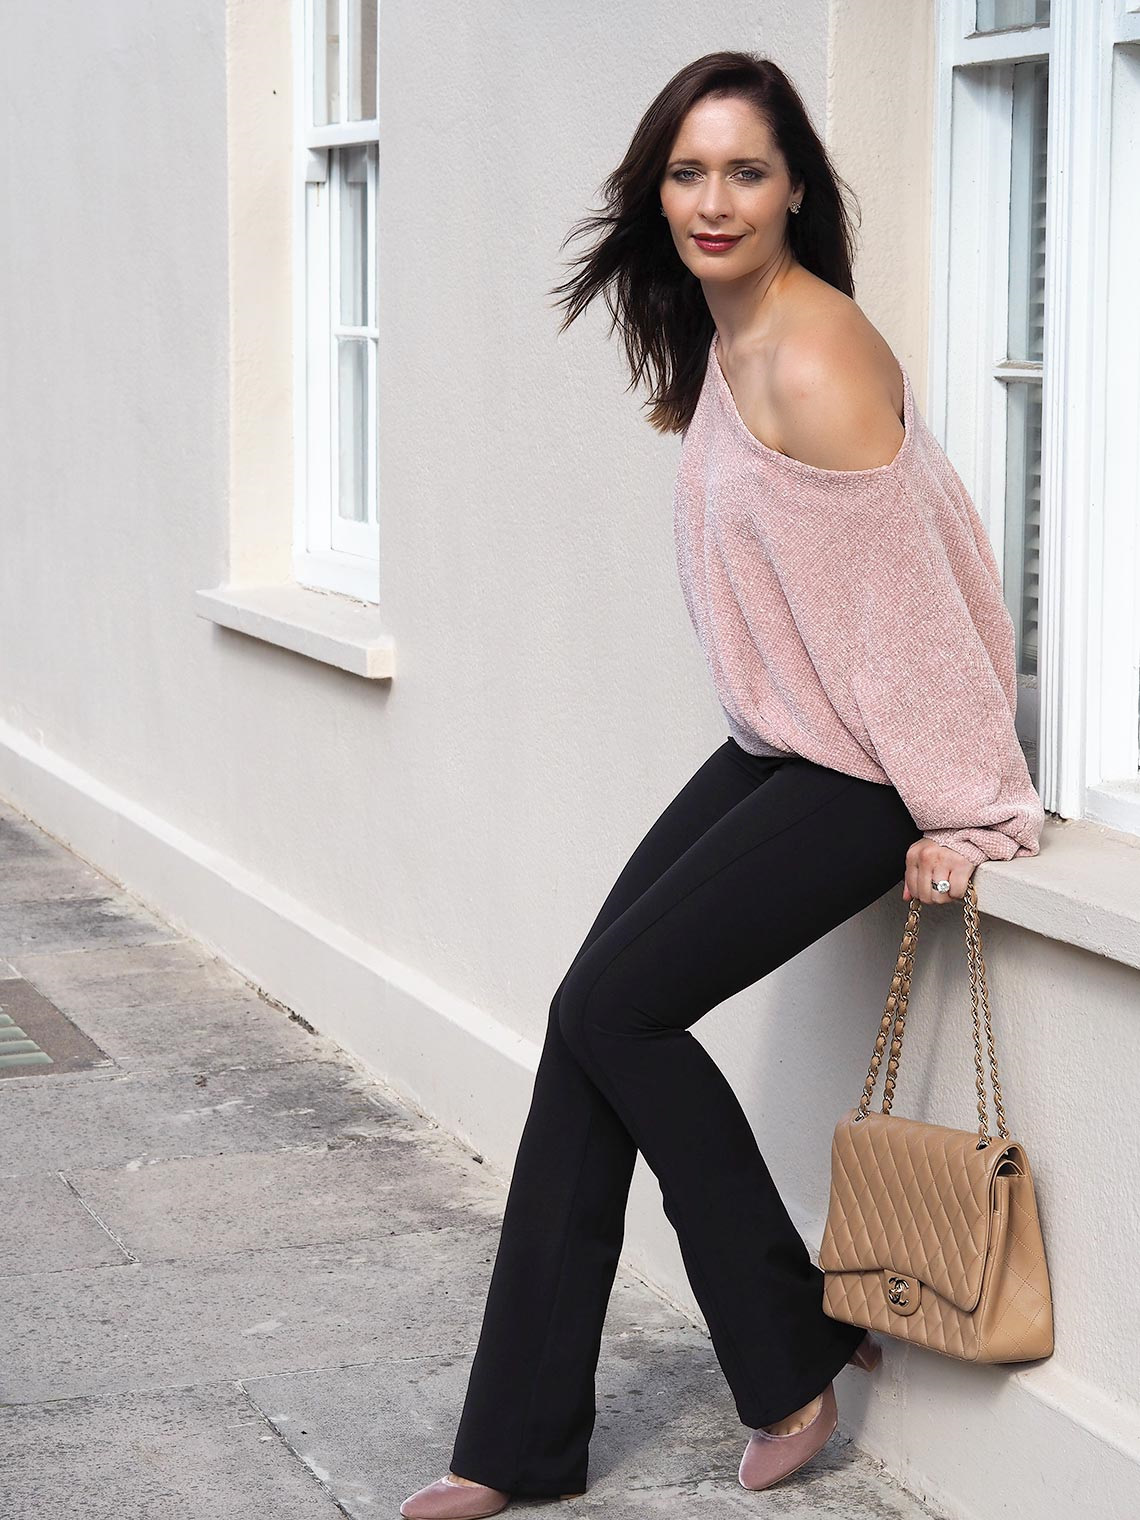 Chic Journal Petra wears off the shoulder trend sweater